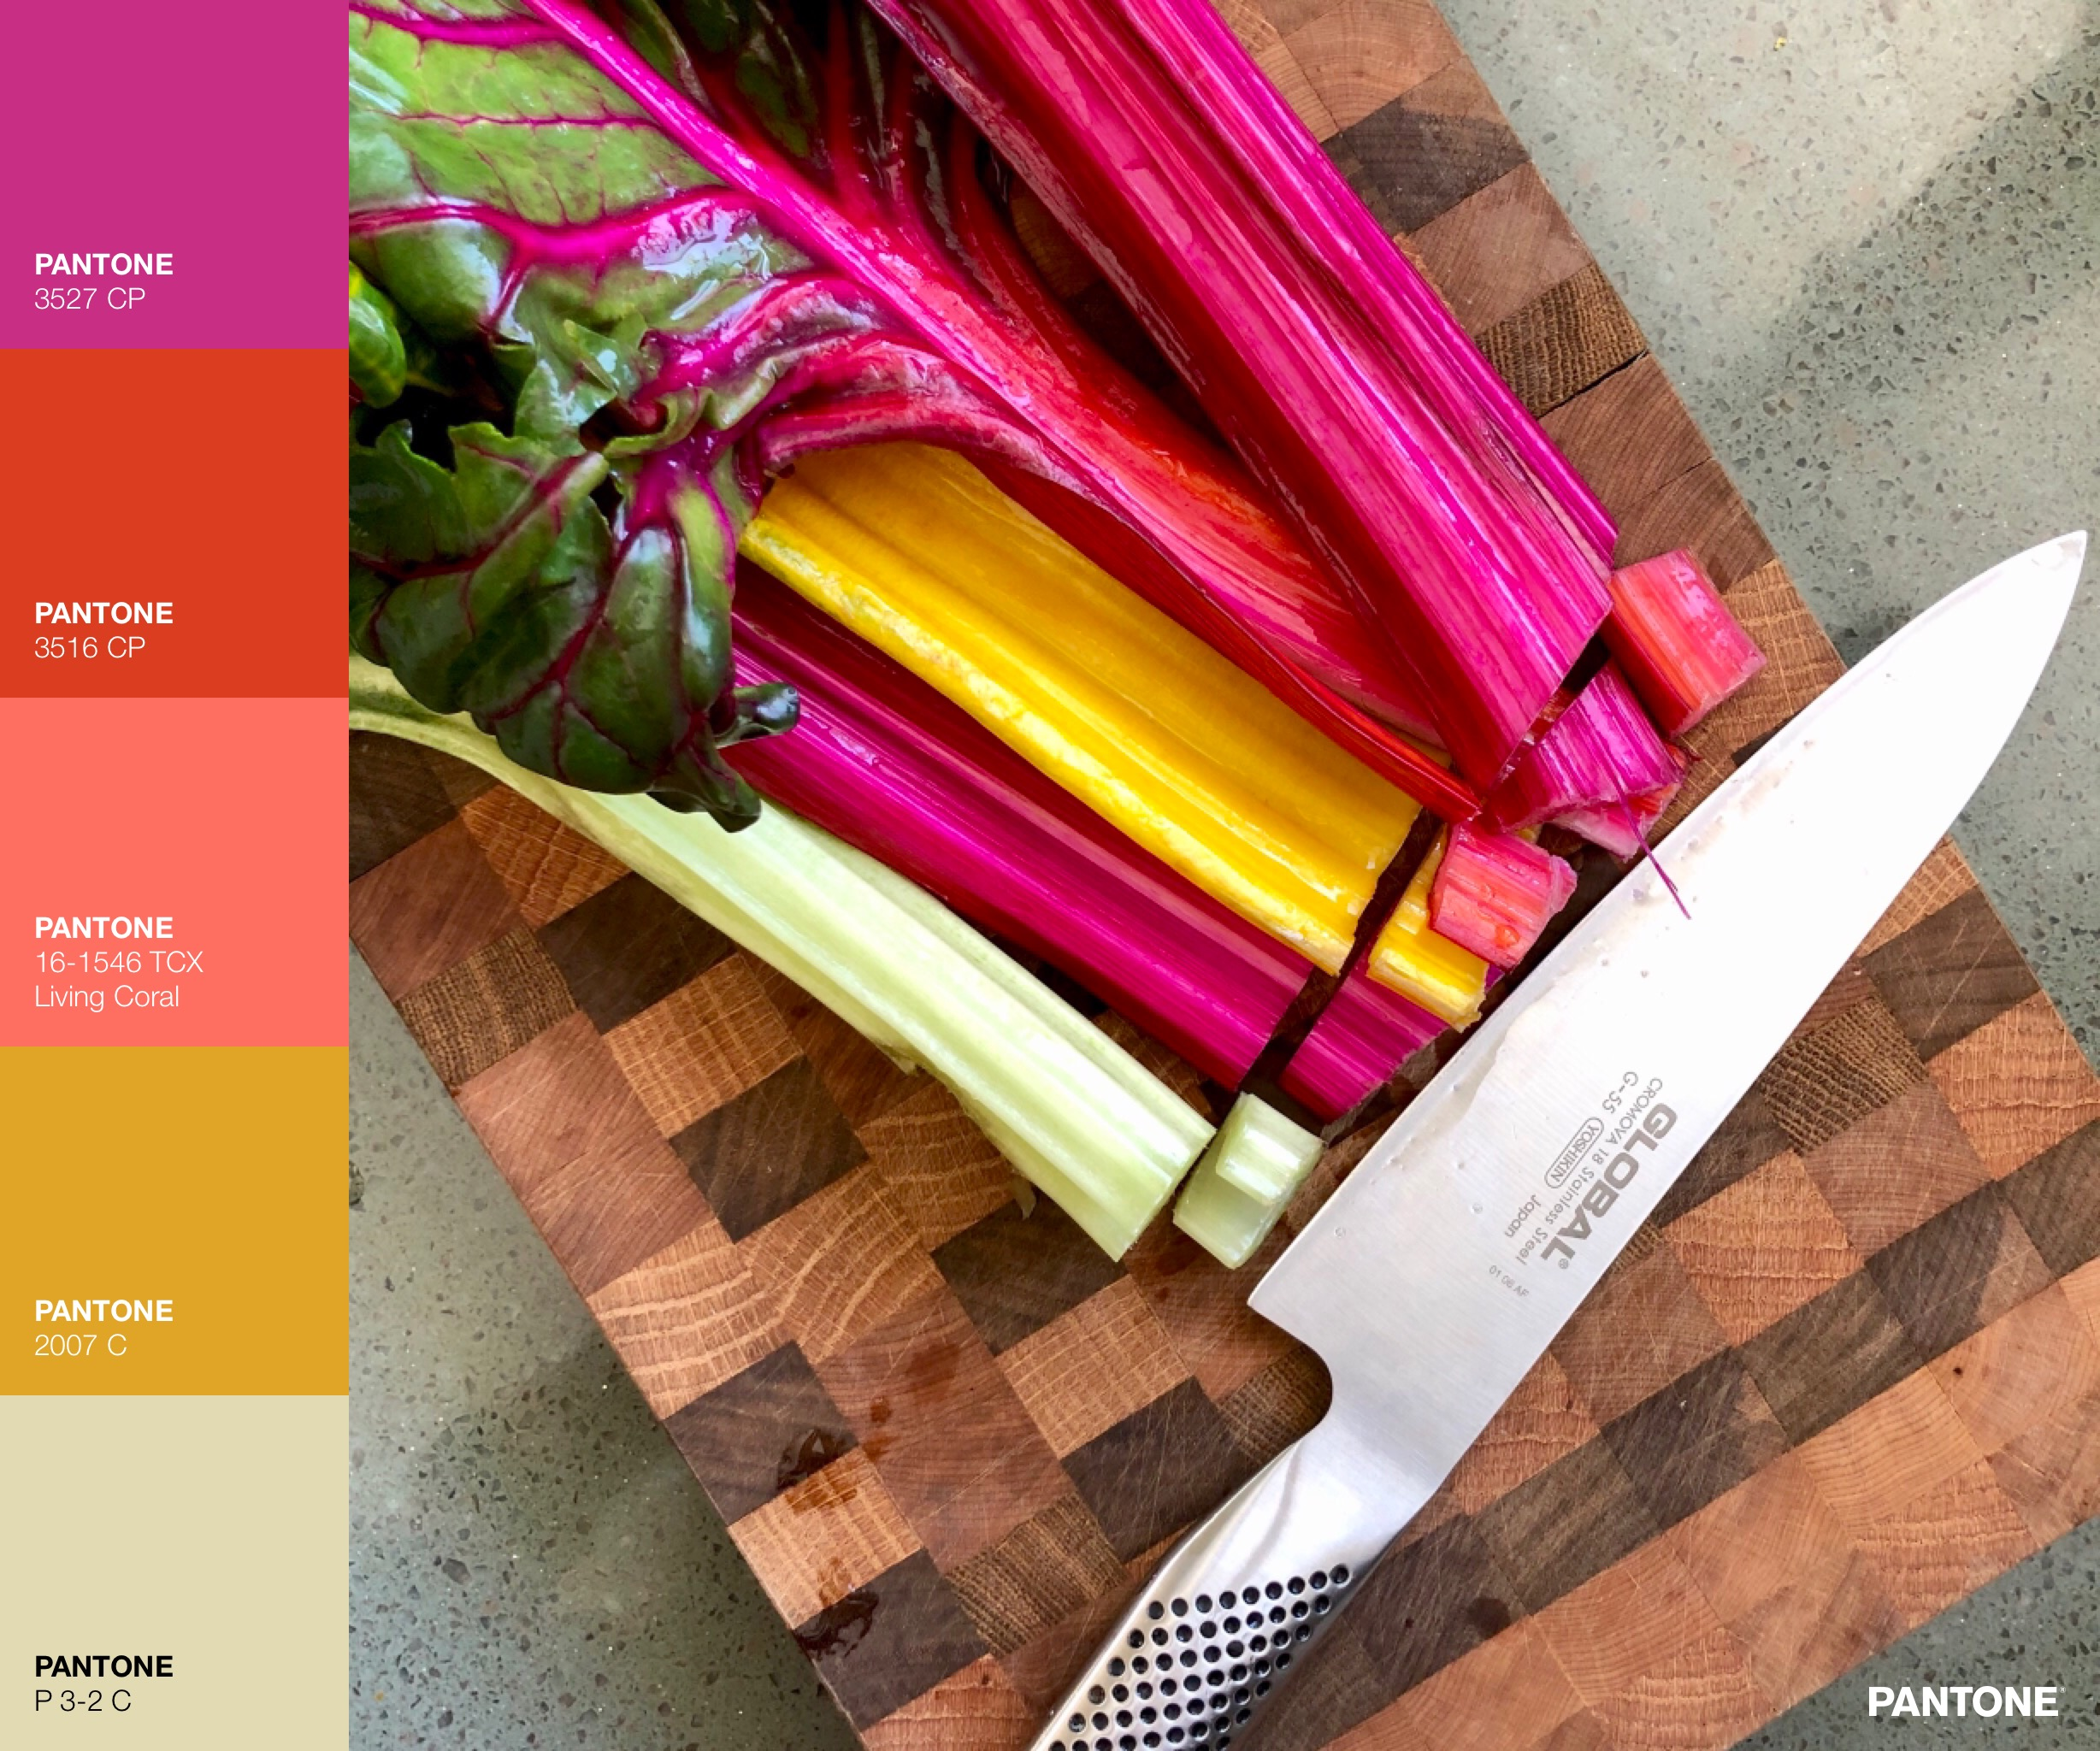 2019 Passion Project - Creating color palettes on purpose, with purpose.@palettesonpurpose